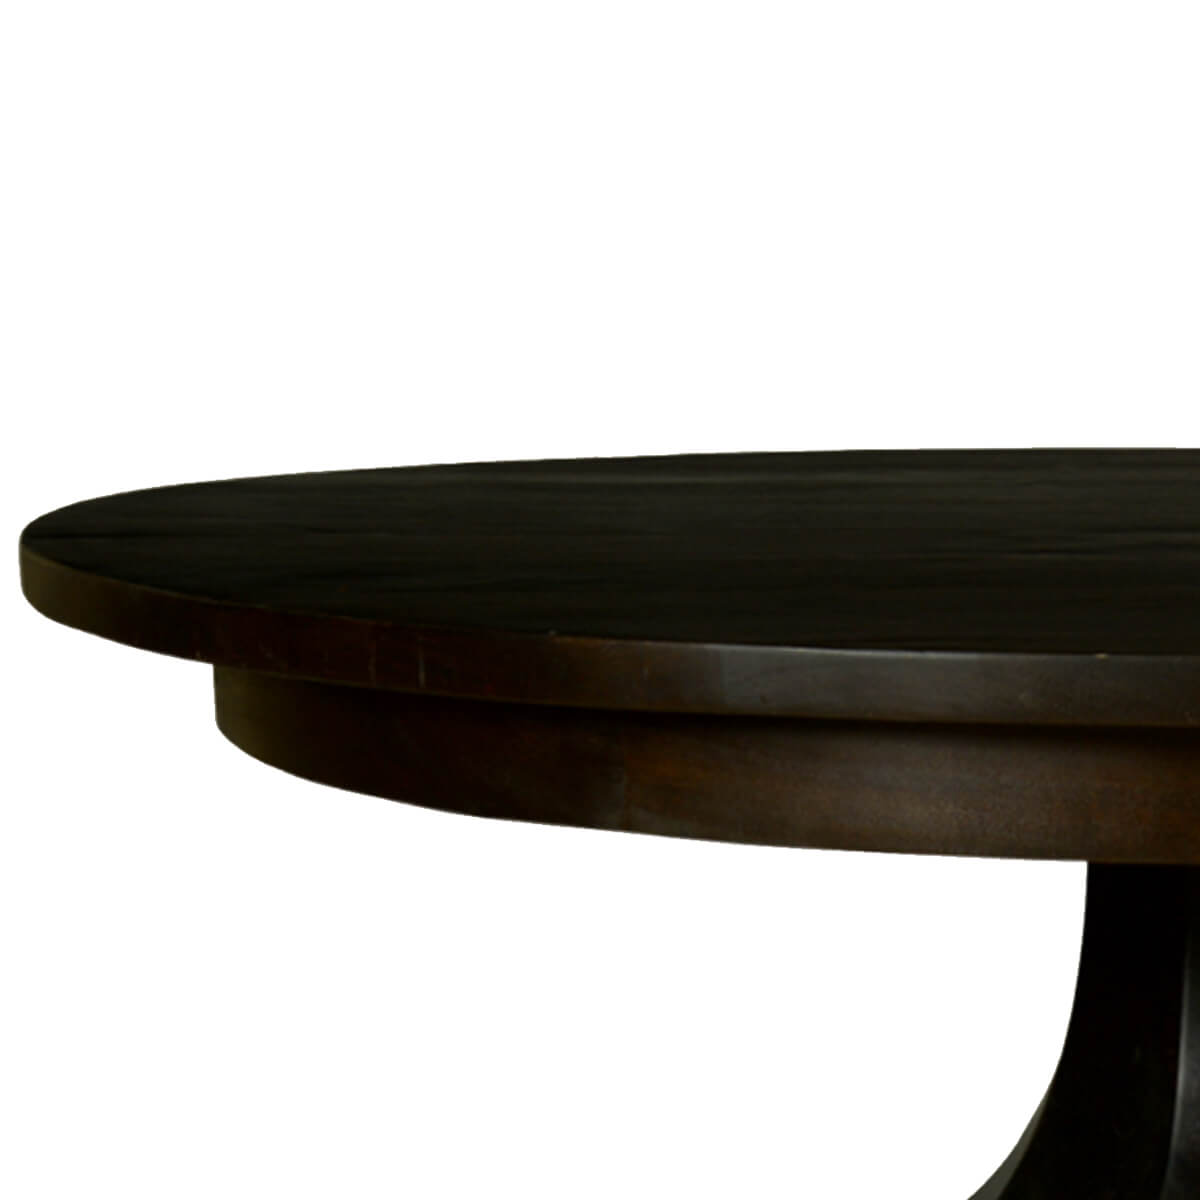 Midnight Solid Mango Wood Round Pedestal Dining Table : 72123 from www.sierralivingconcepts.com size 1200 x 1200 jpeg 280kB